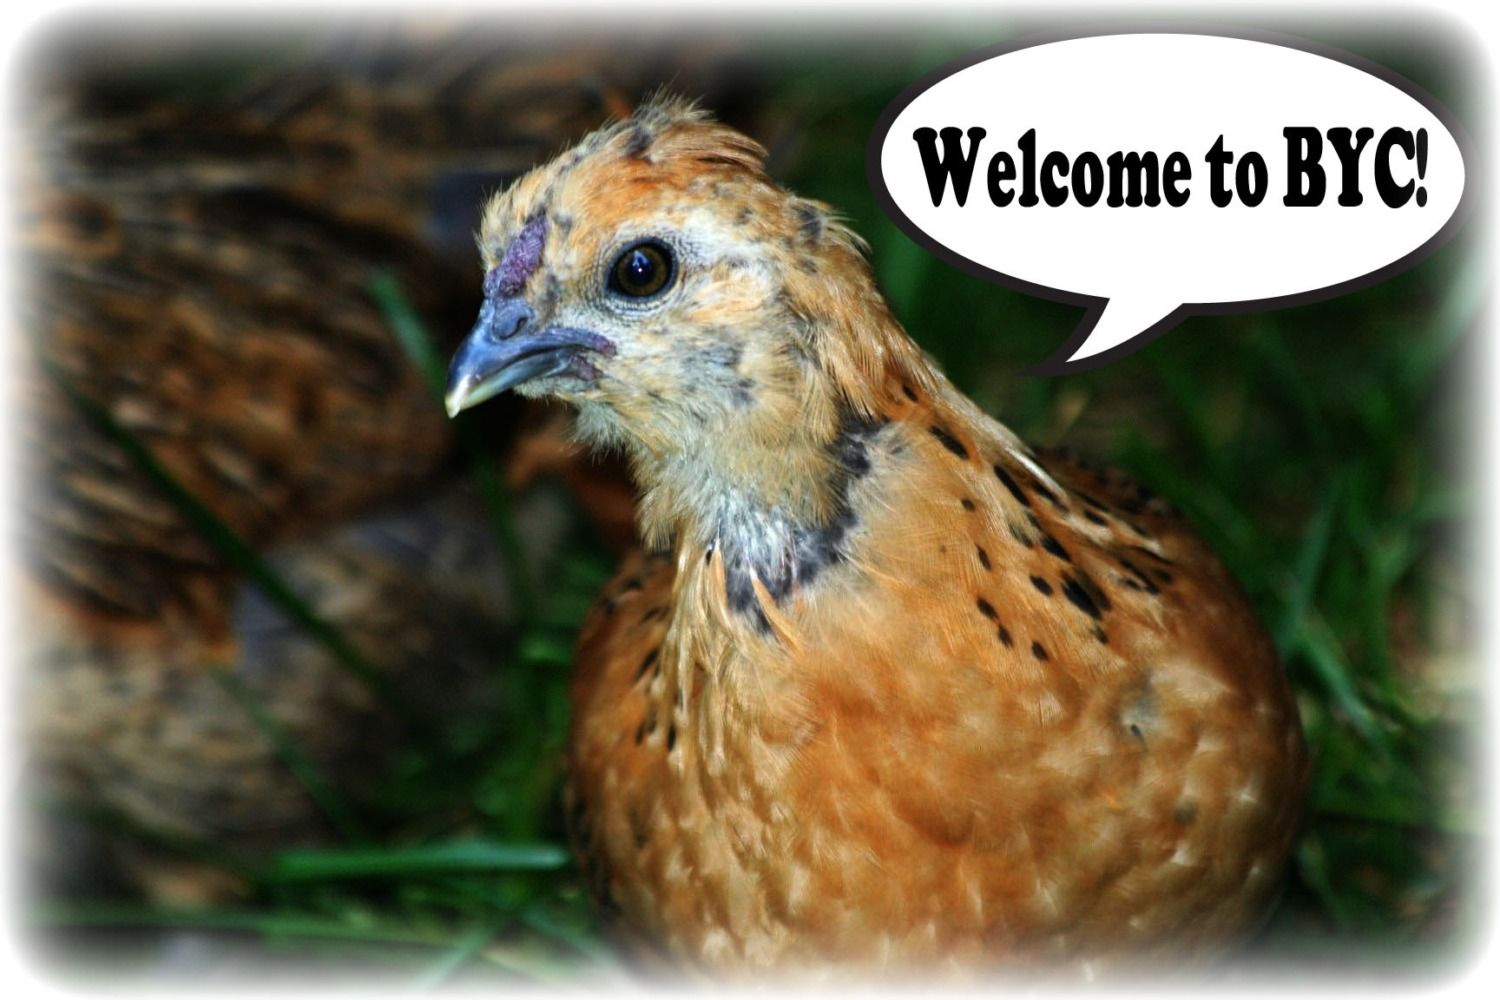 http://www.backyardchickens.com/forum/uploads/103583_welcome.jpg